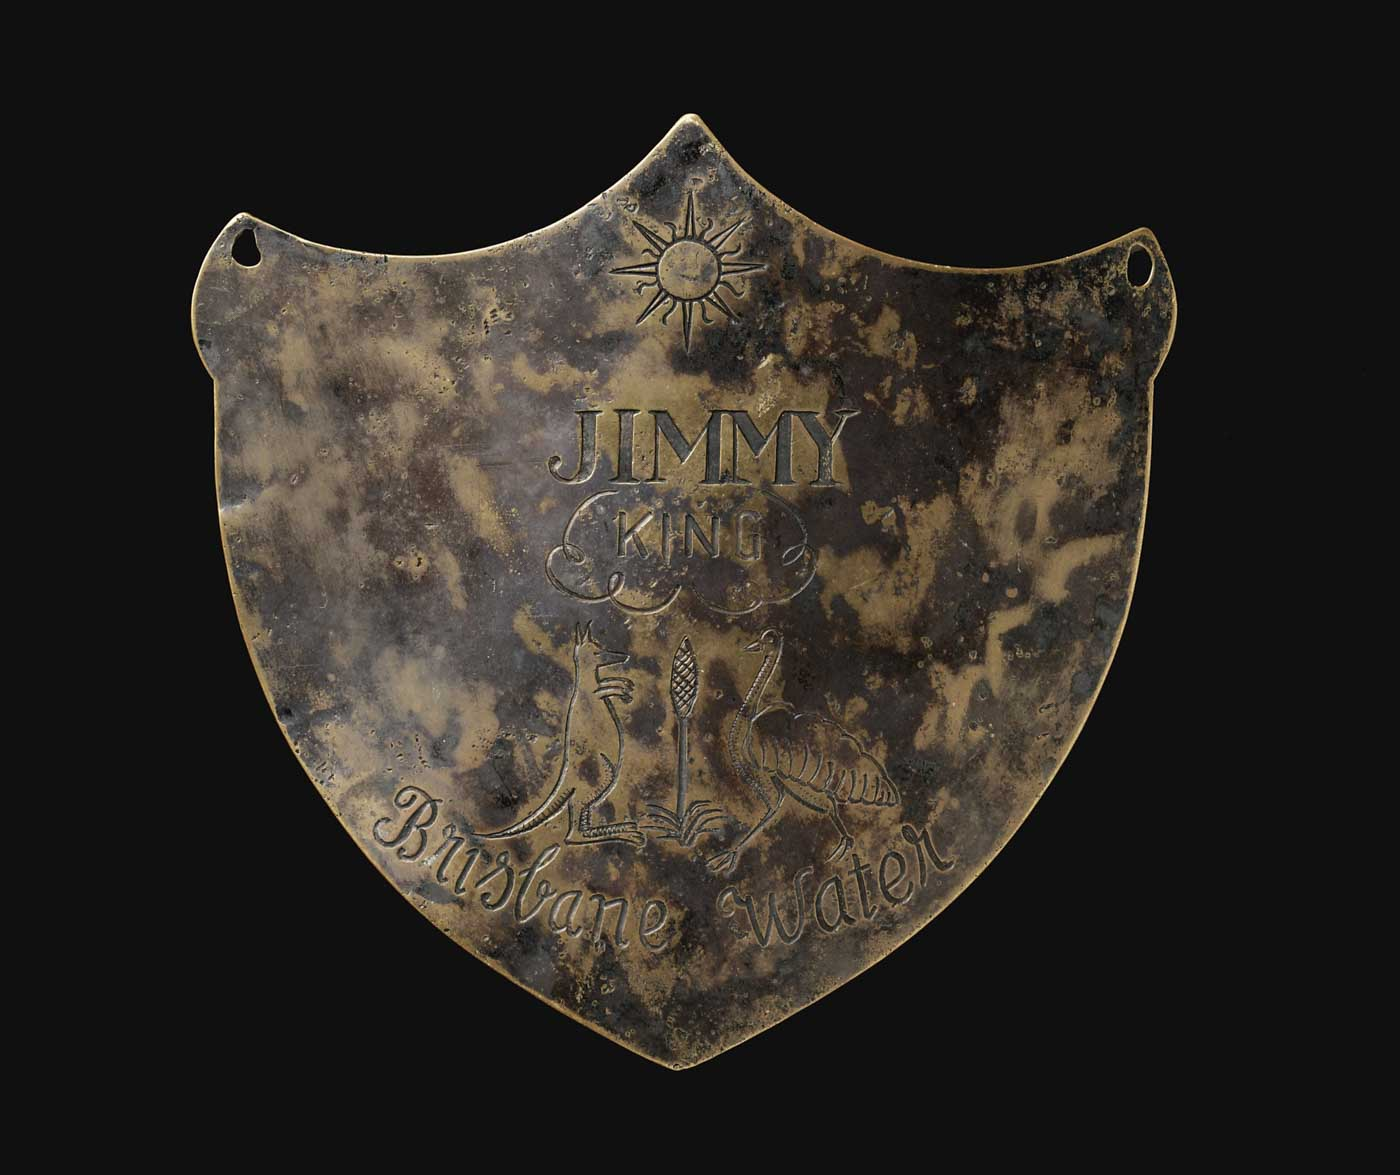 Engraved breastplate with an image of a sun at top and a central kangaroo and emu. - click to view larger image